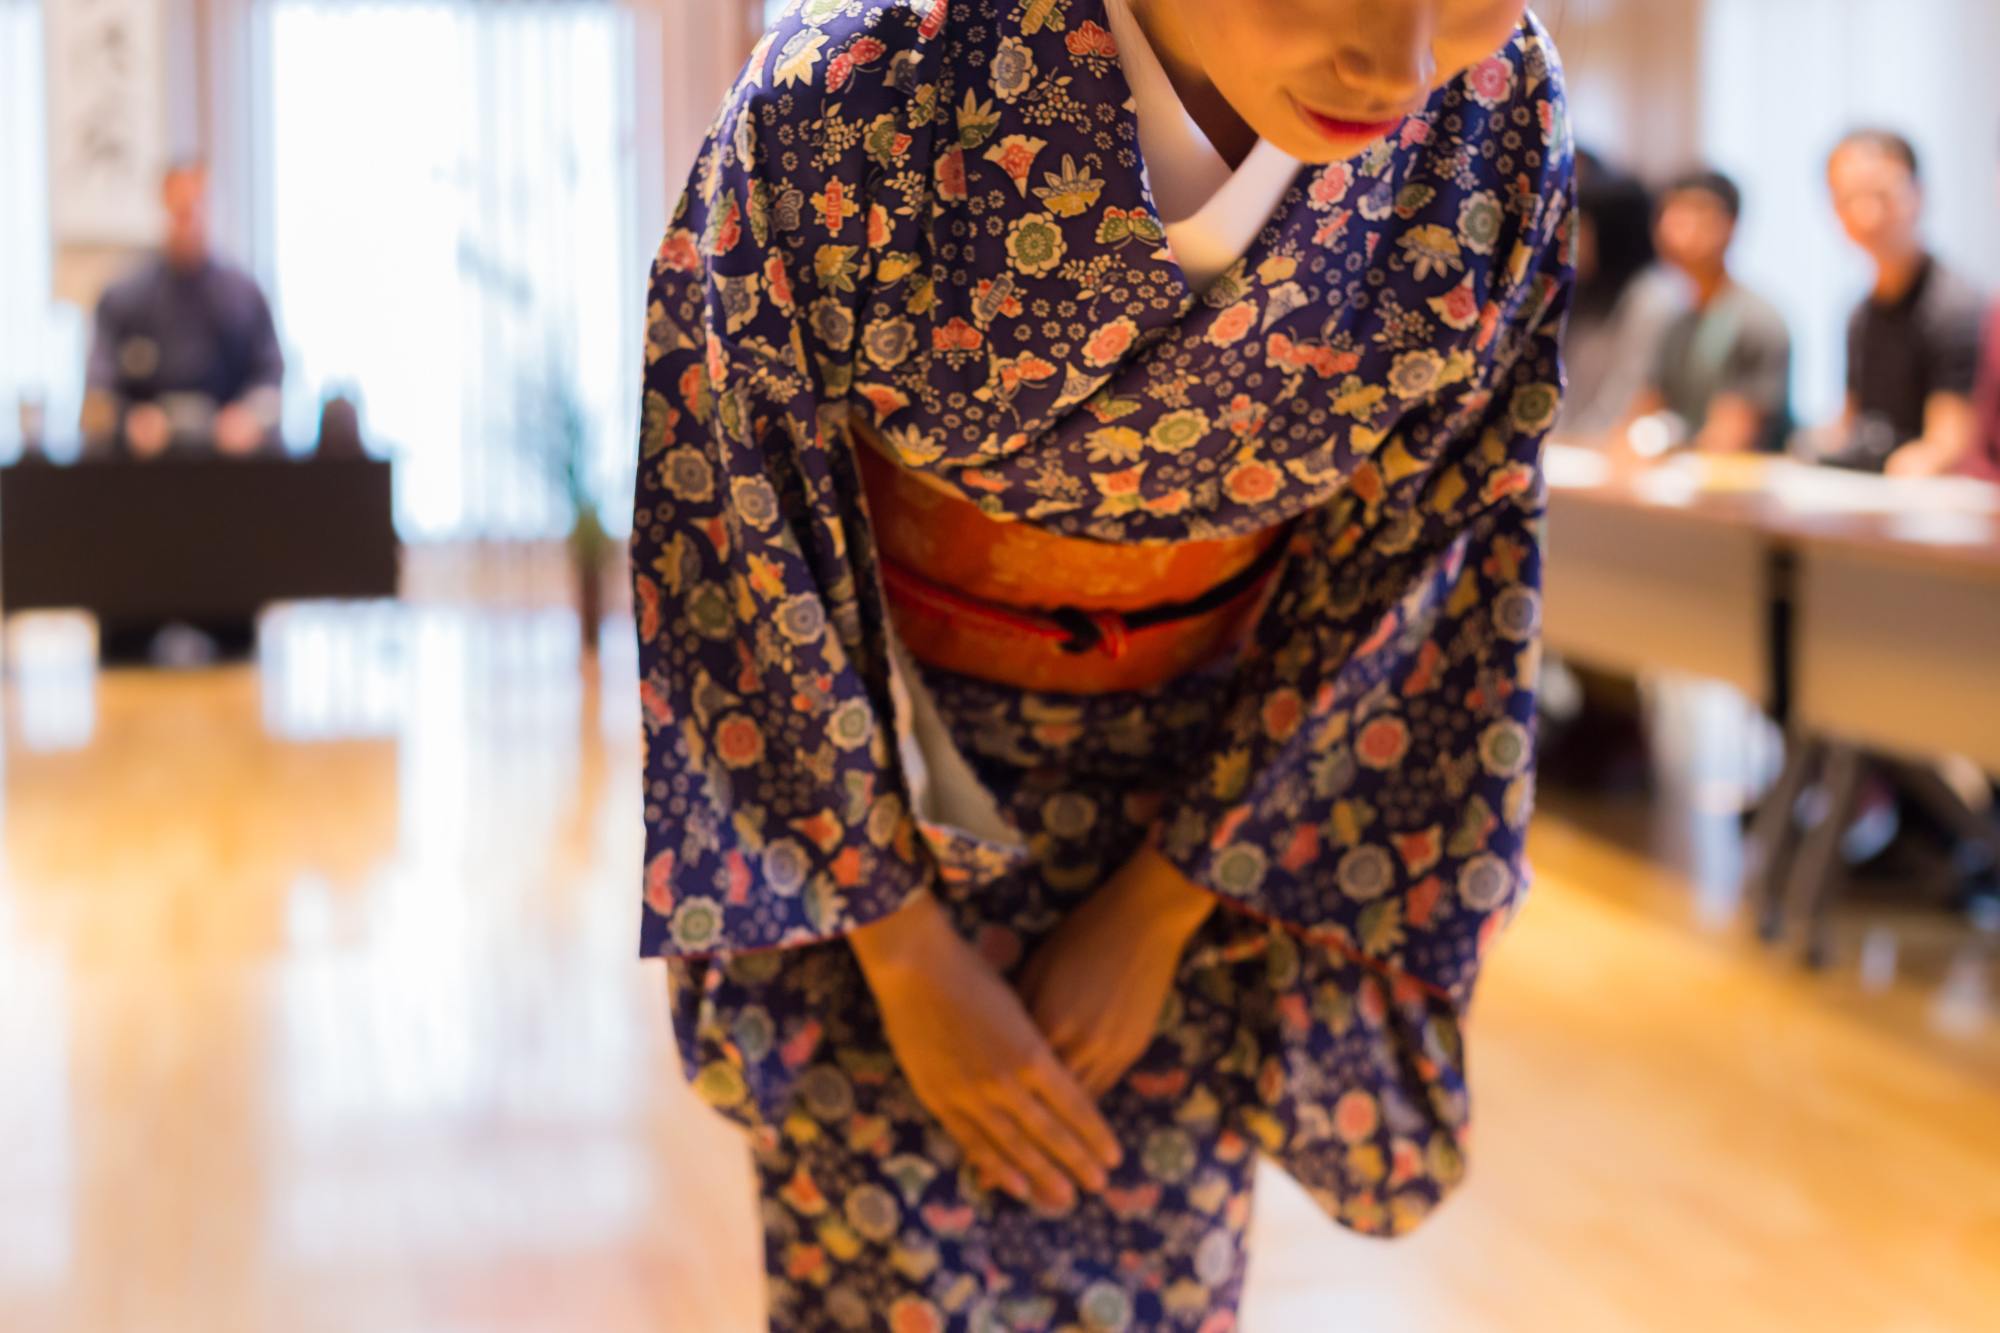 Not bowing out: When the Ministry of Economy, Trade and Industry's Cool Japan project appeared to fail at promoting the nation's anime and manga as cultural assets, METI moved on to omotenashi (Japanese-style hospitality) and wabi-sabi (aesthetics of imperfection). | ISTOCK